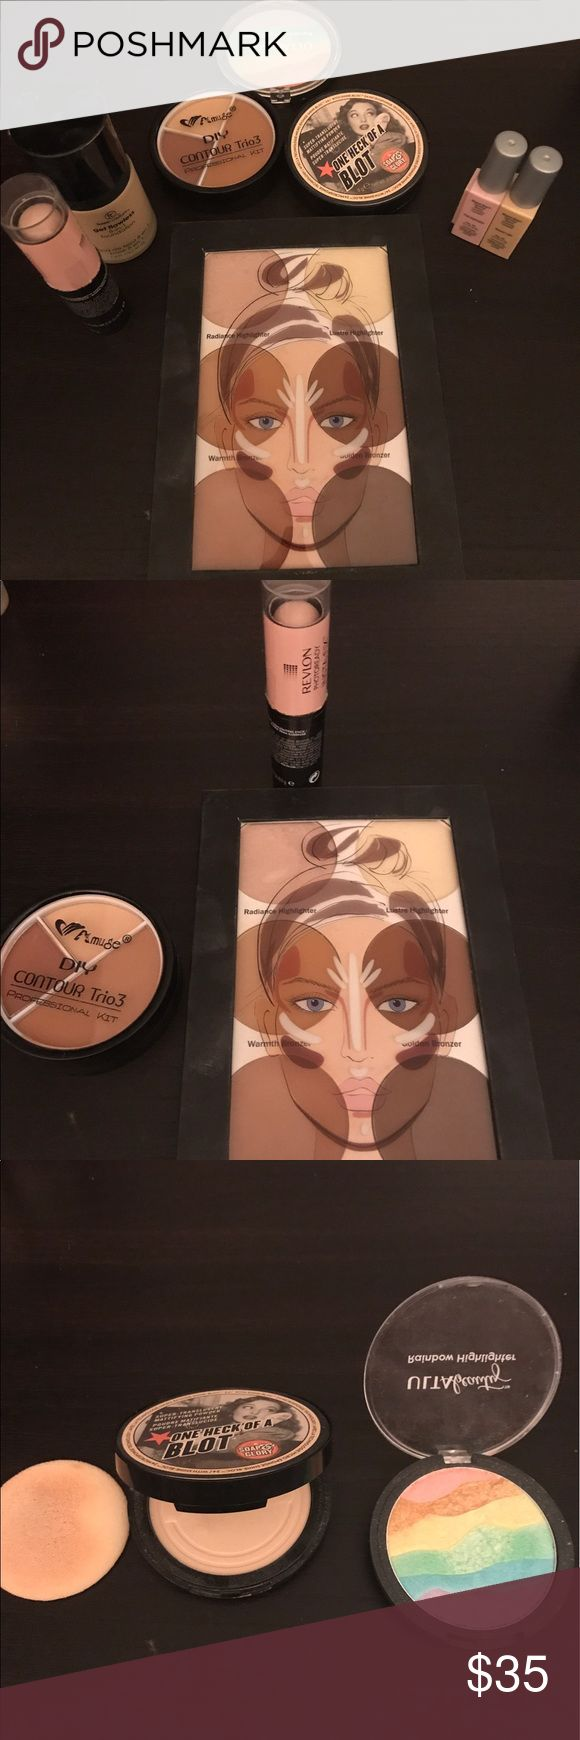 Foundation/Contour bundle This bundle included foundation, contouring kits, highlighter, illuminators, correctors, etc. picture shown. Some slightly used, others open but unused not even try on. Will include more free make up and bag. Good condition and unused condition. Makeup Foundation